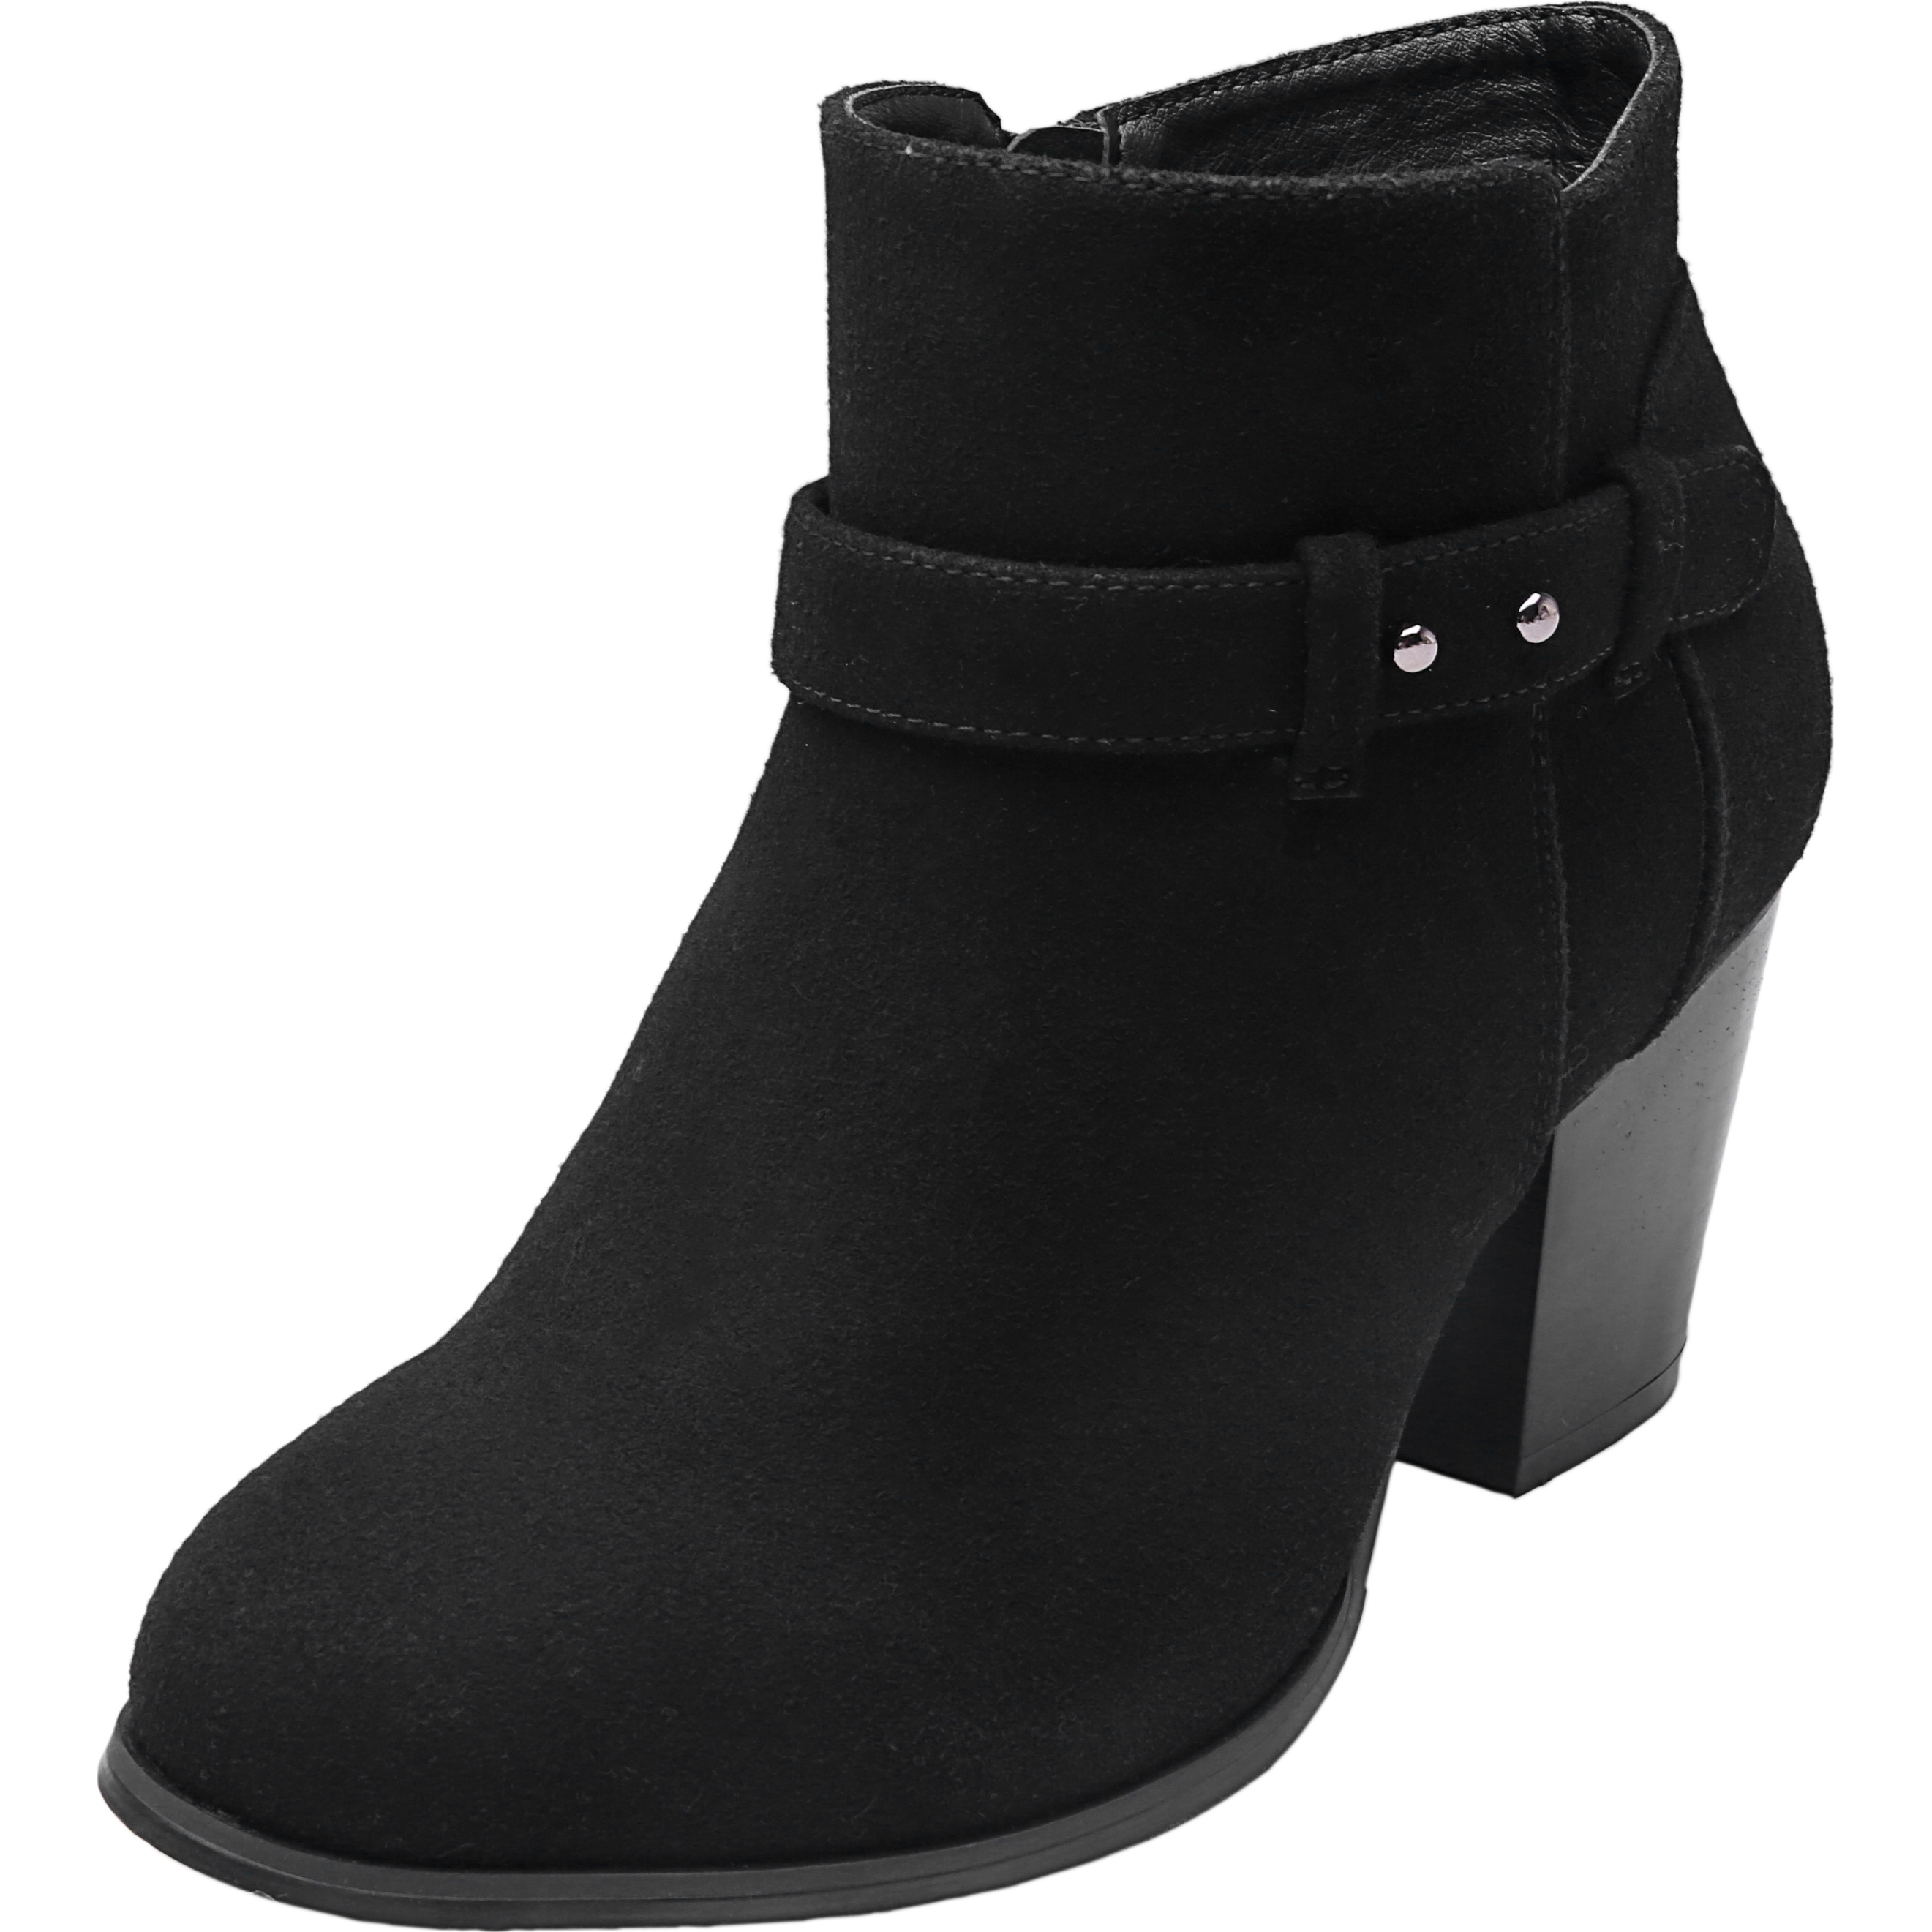 665d5f39308 Plus Size Wide Width Ankle Boots for Women Mid Chunky Block Stacked Heels  Round Toe Slip on Side Zip